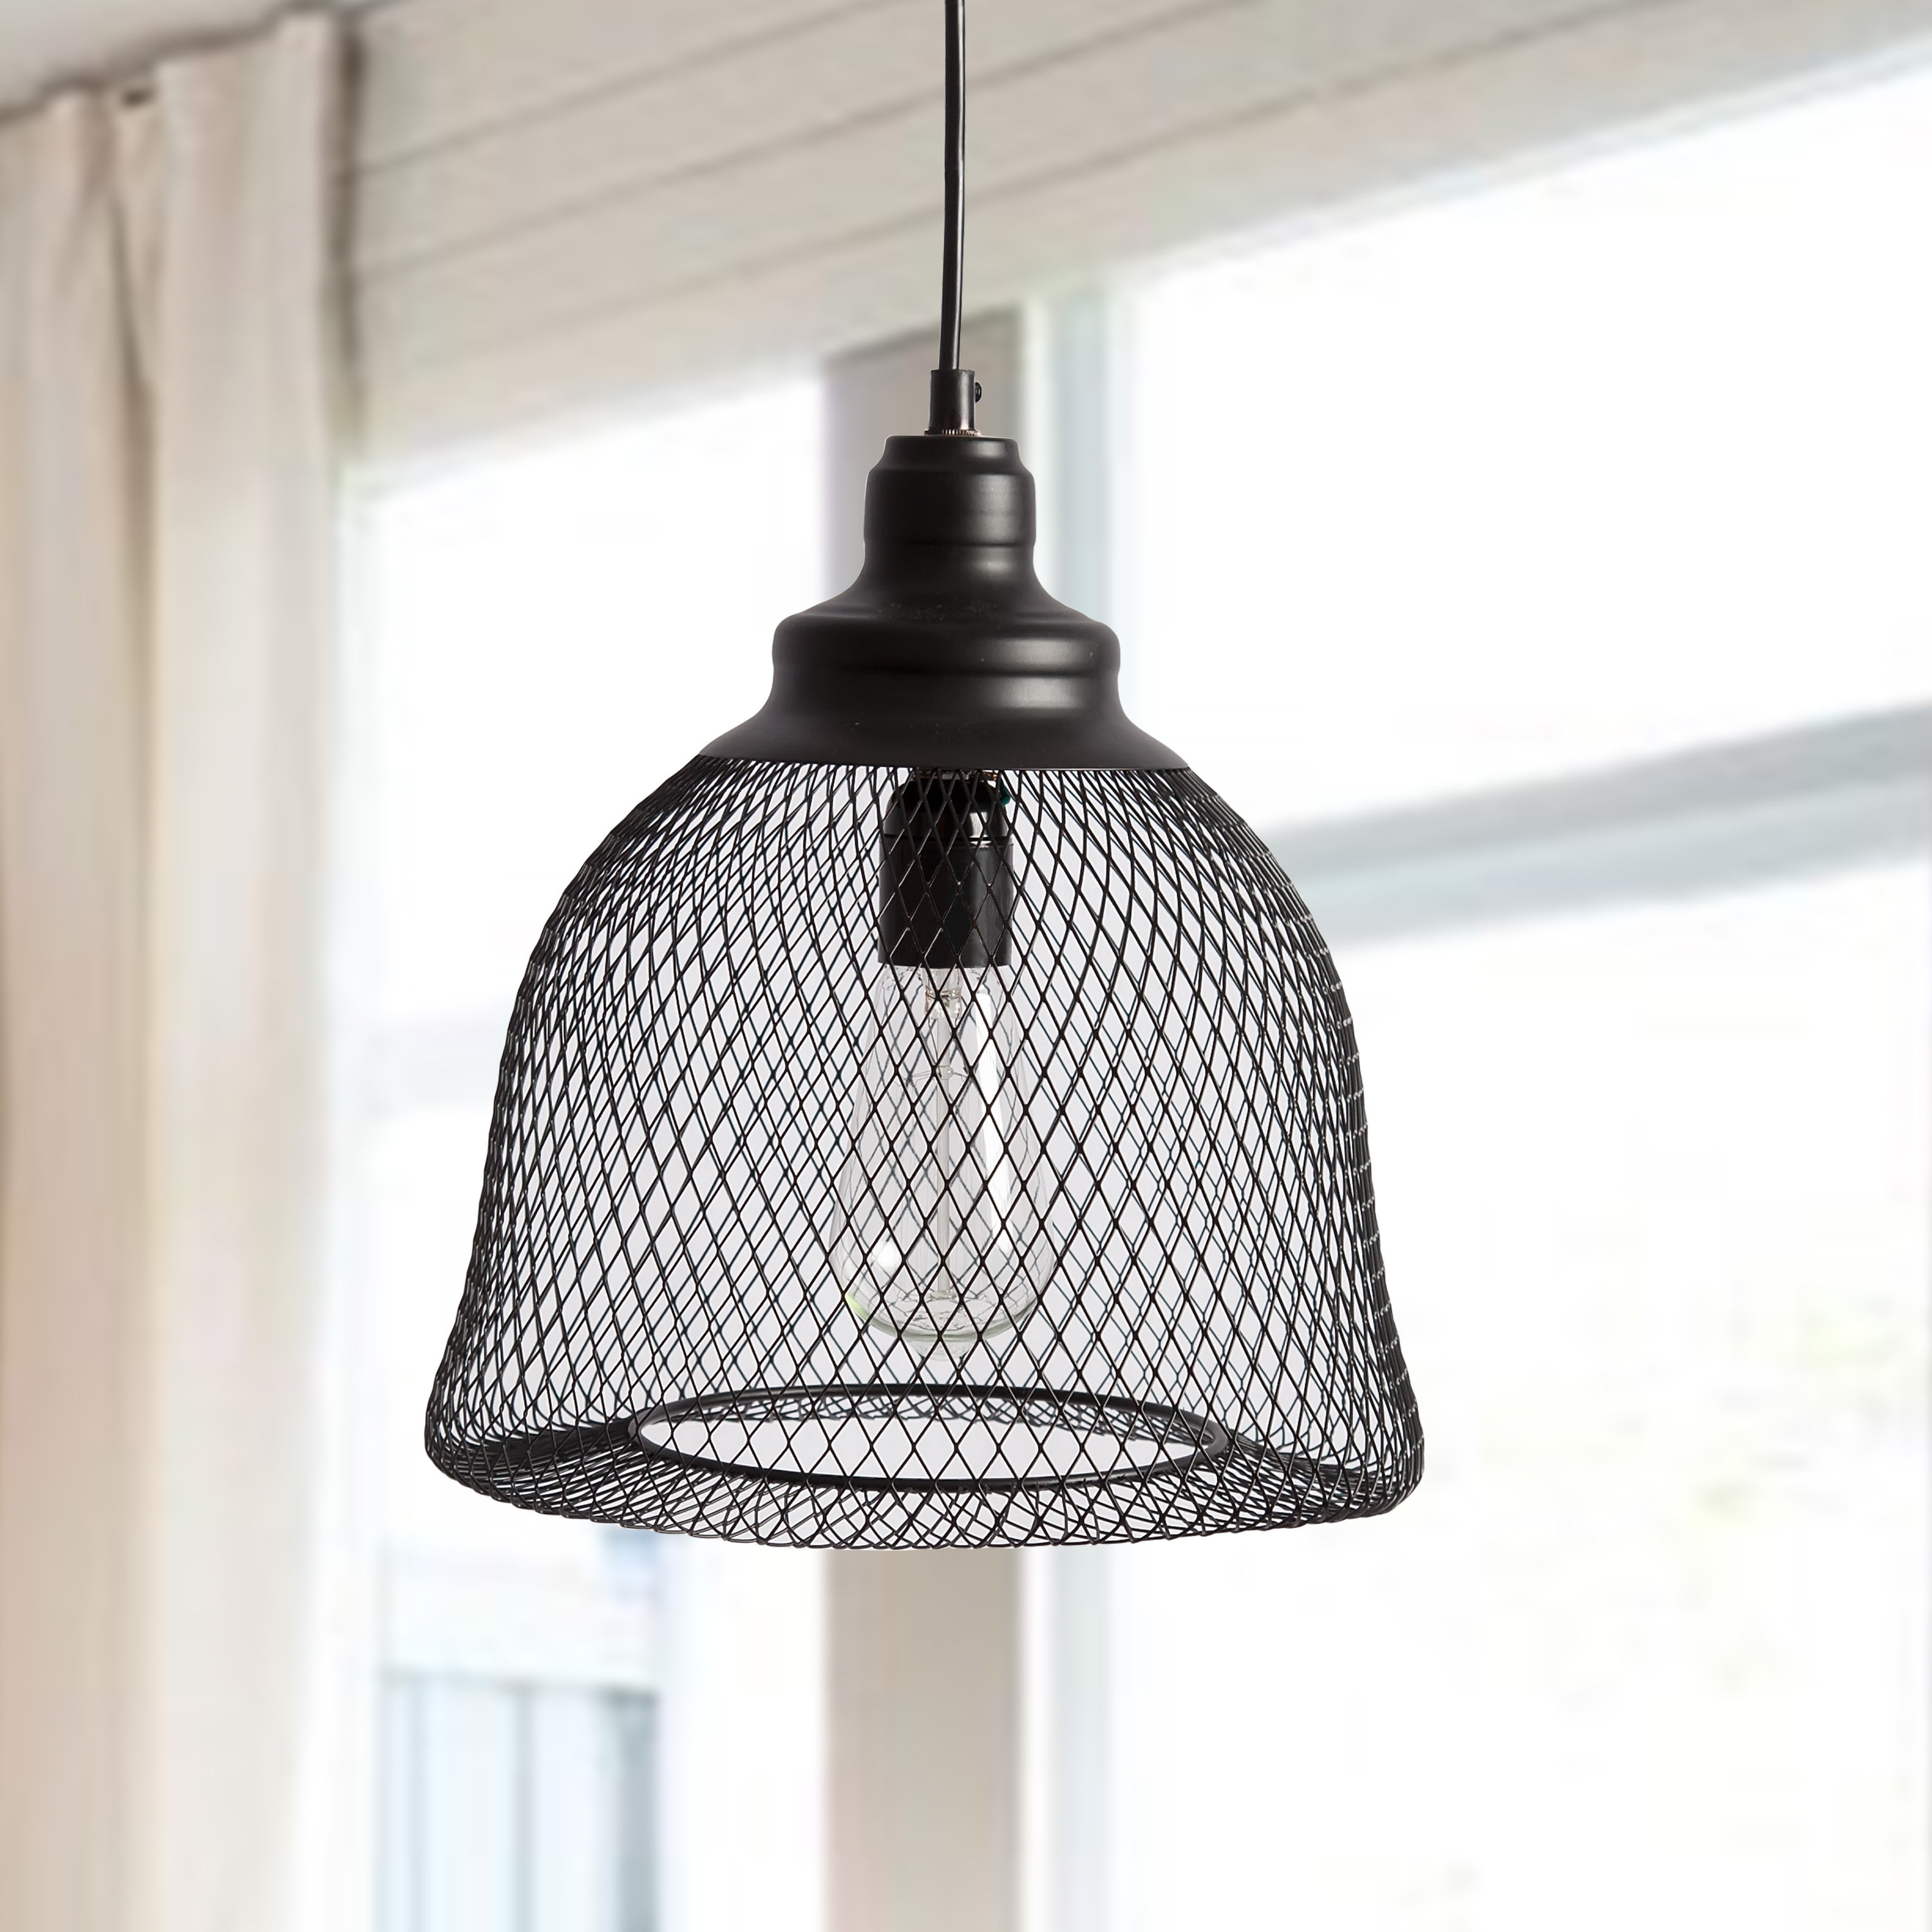 Scruggs 1 Light Geometric Pendants Within Best And Newest Mccandless 1 Light Single Bell Pendant (View 22 of 25)